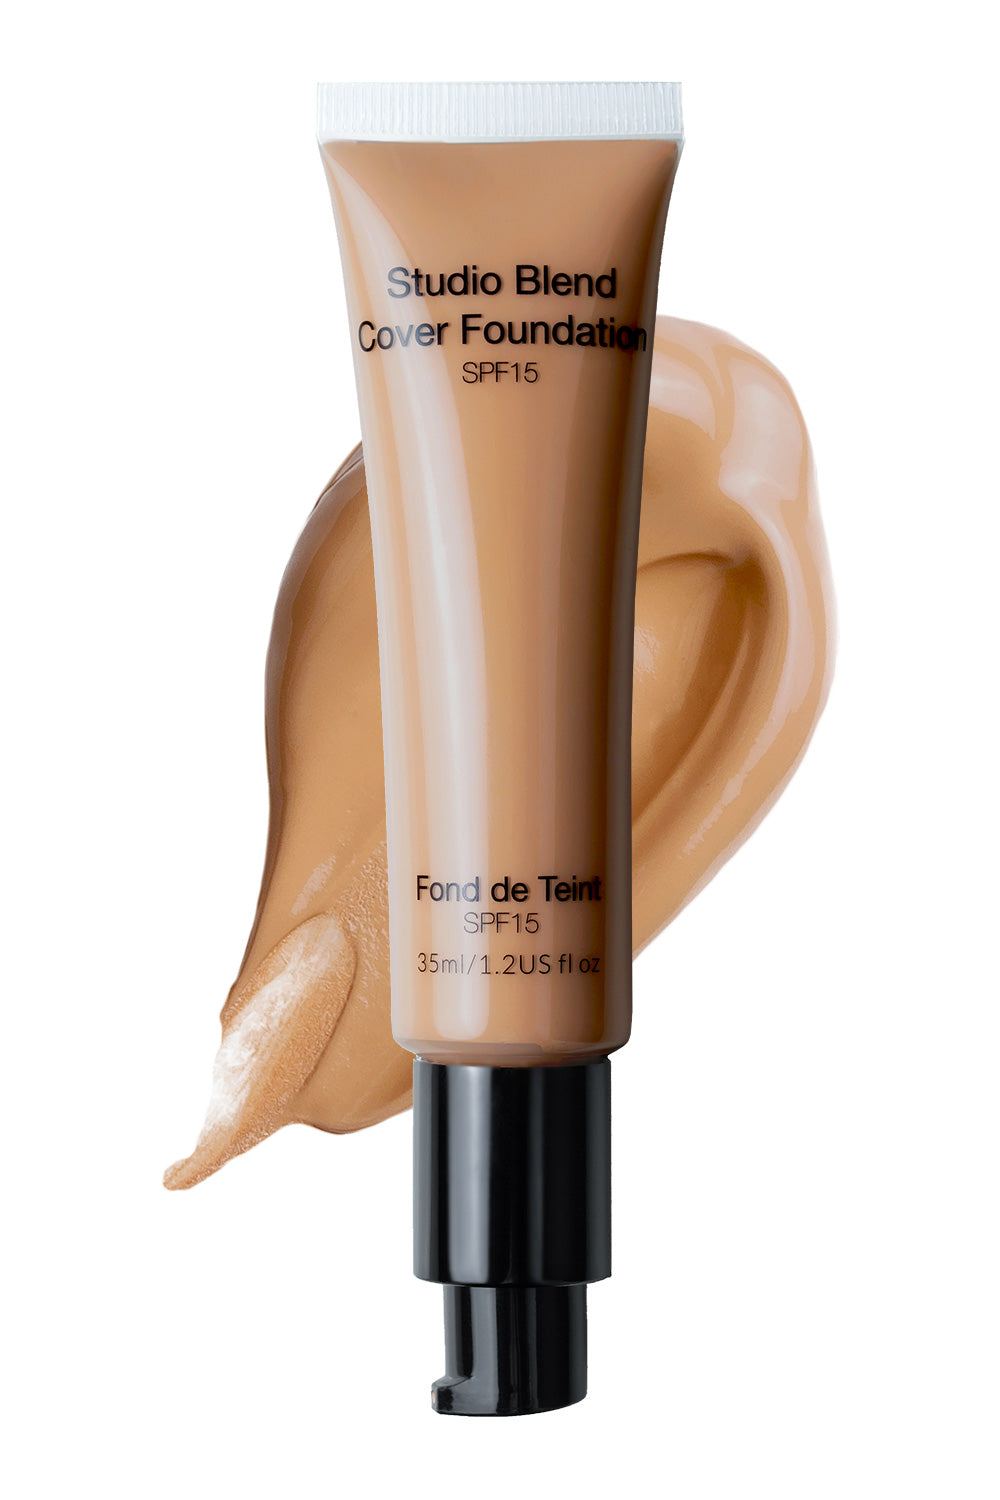 125 - Studio Blend Cover Foundation